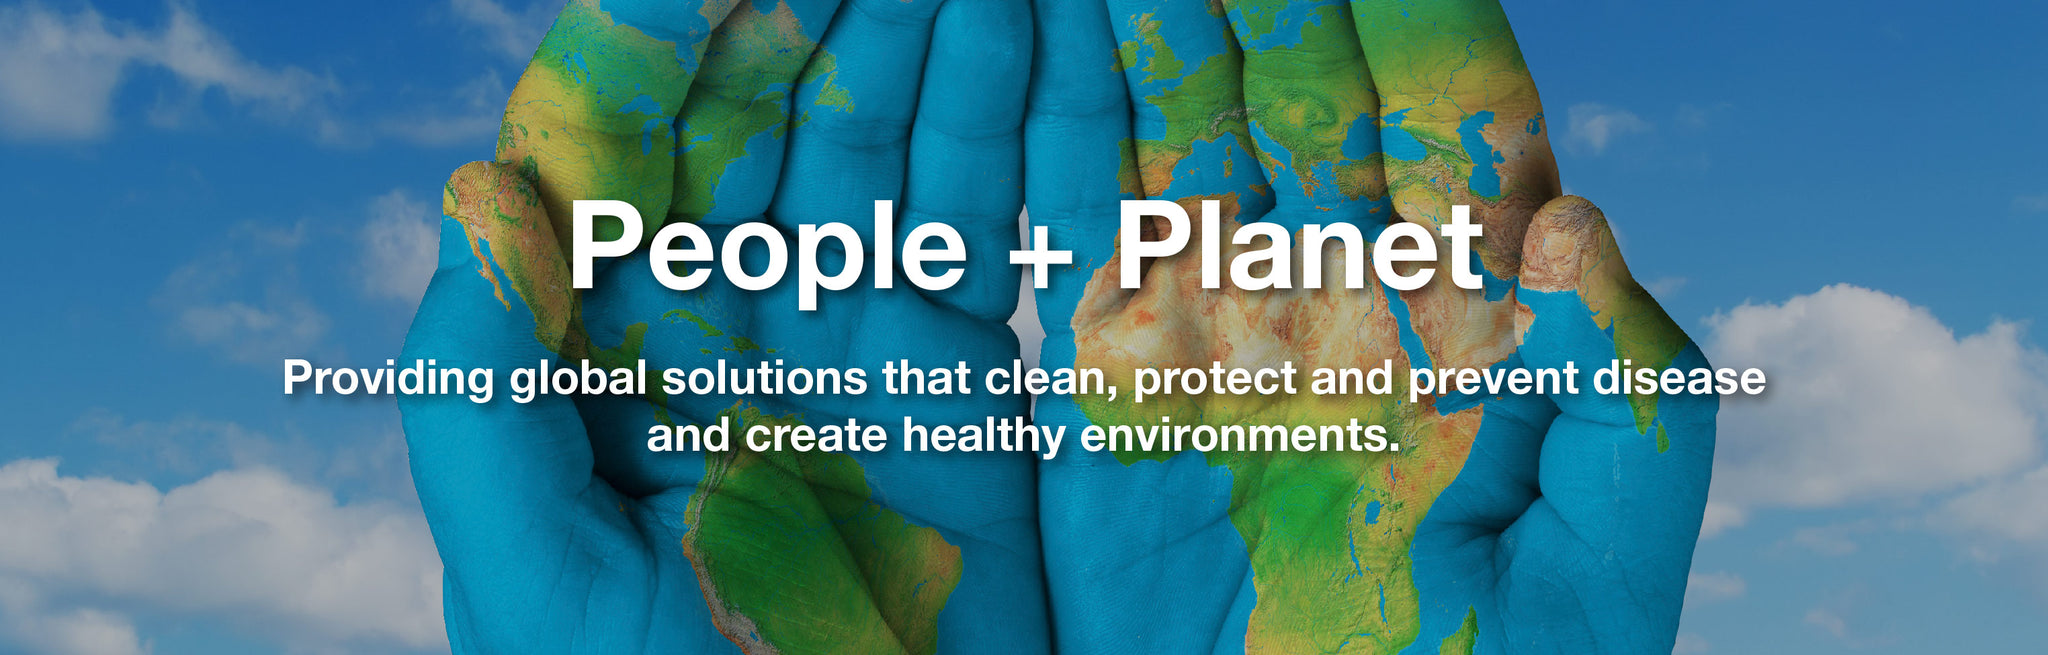 People and Planet - Providing global solutions that clean, protect and prevent disease and create healthy environments